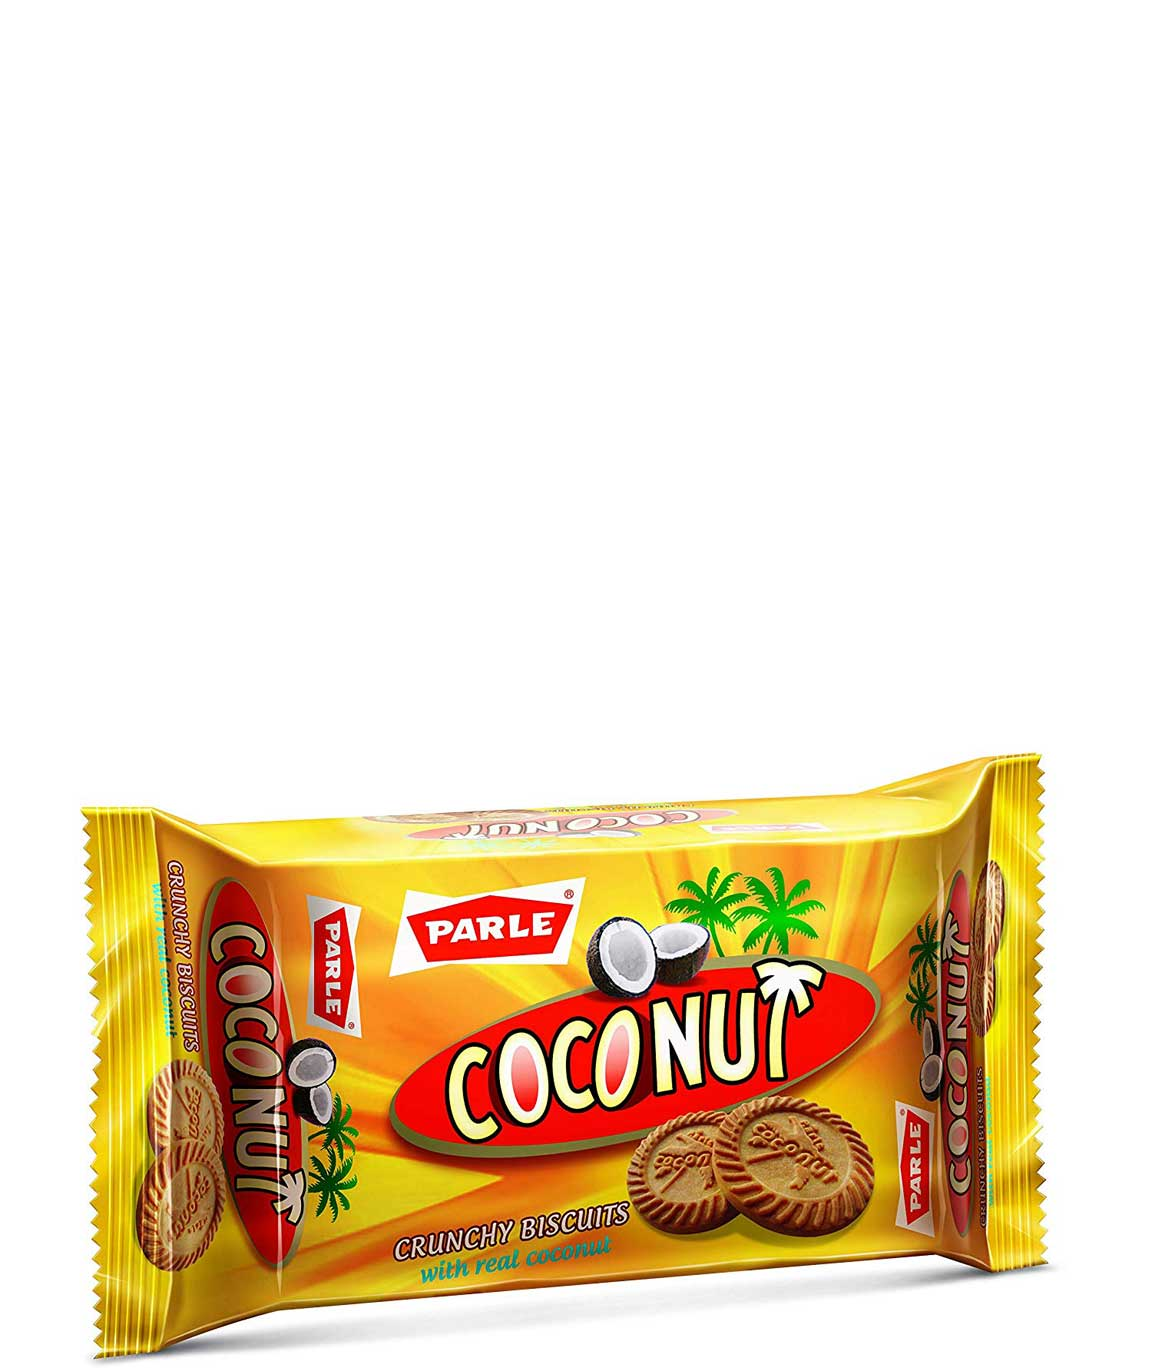 Parle Coconut Crunchy Biscuit, 108g